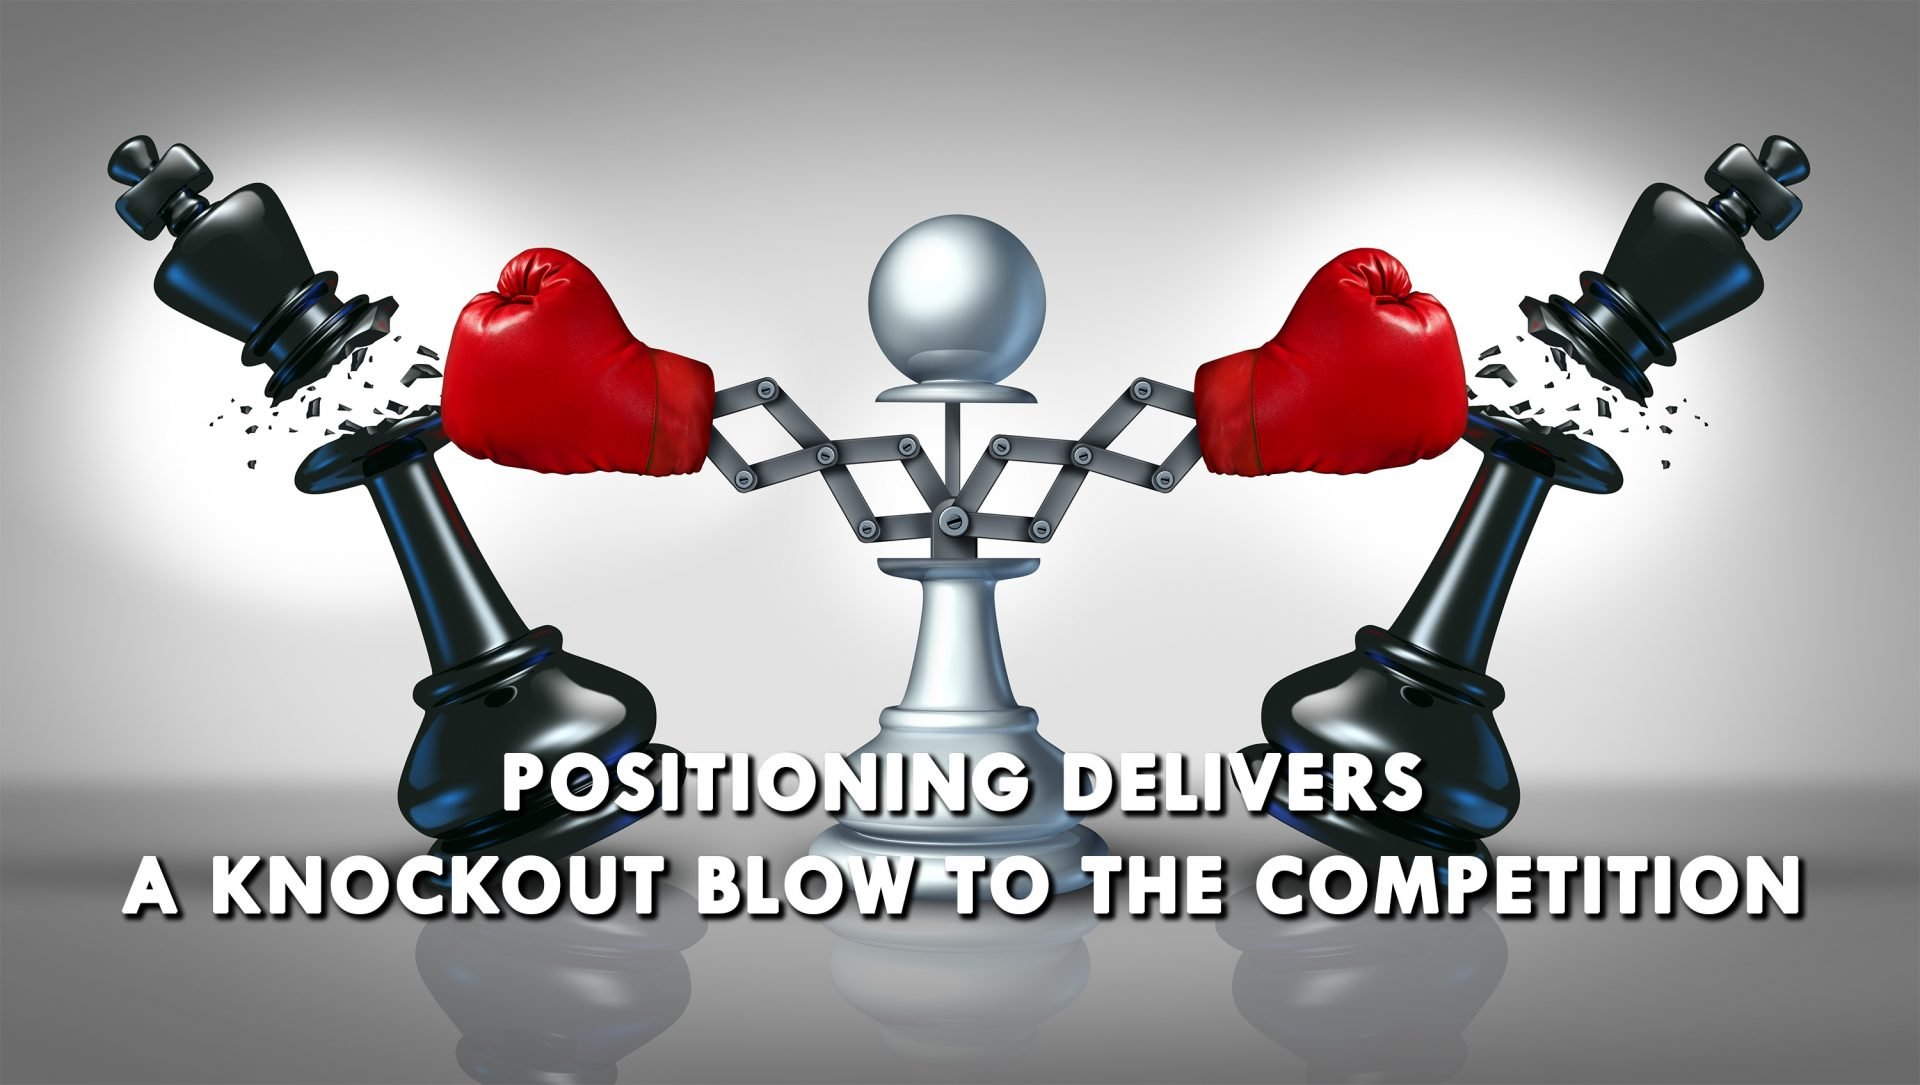 Positioning Knocks Out Competition